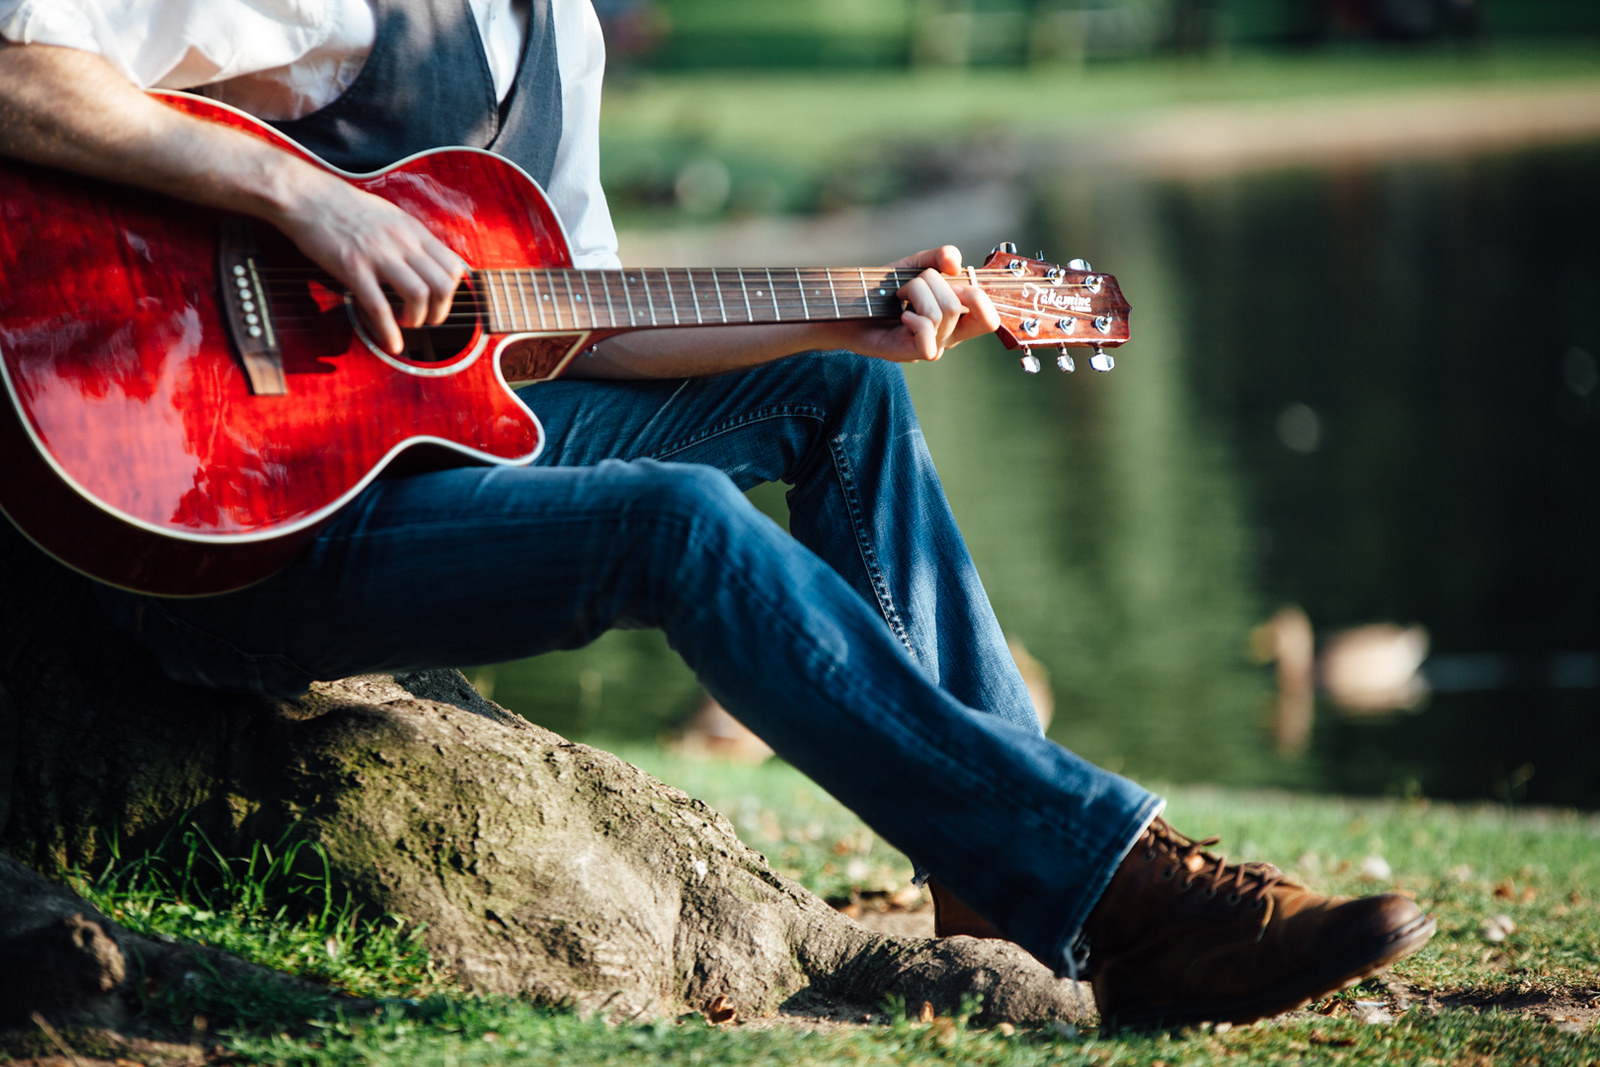 Simple Tips For Better Chord Progressions Take Note By Berklee Online